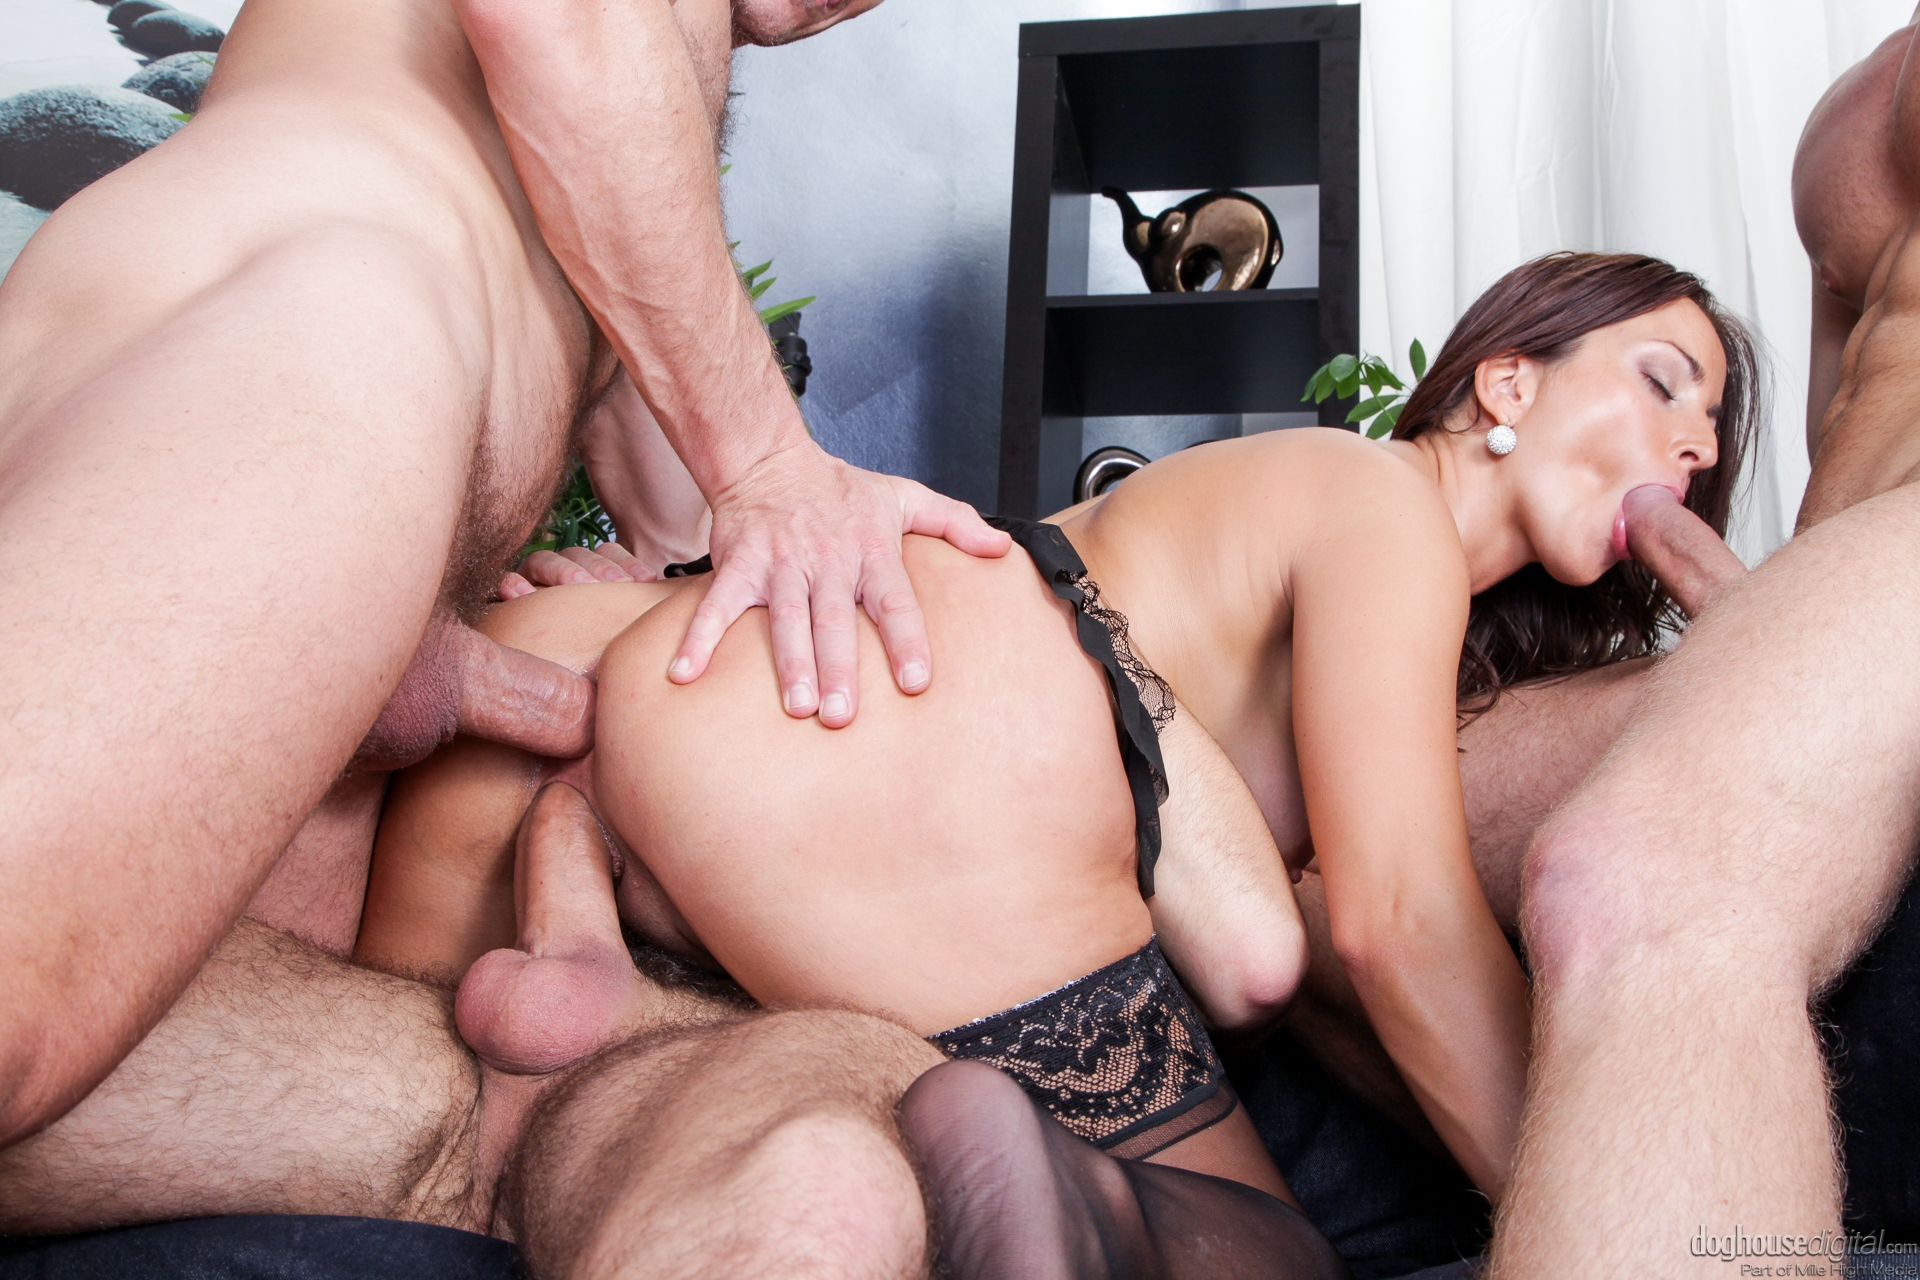 All Double Penetration Porn Pics Available For Watching With No Limits